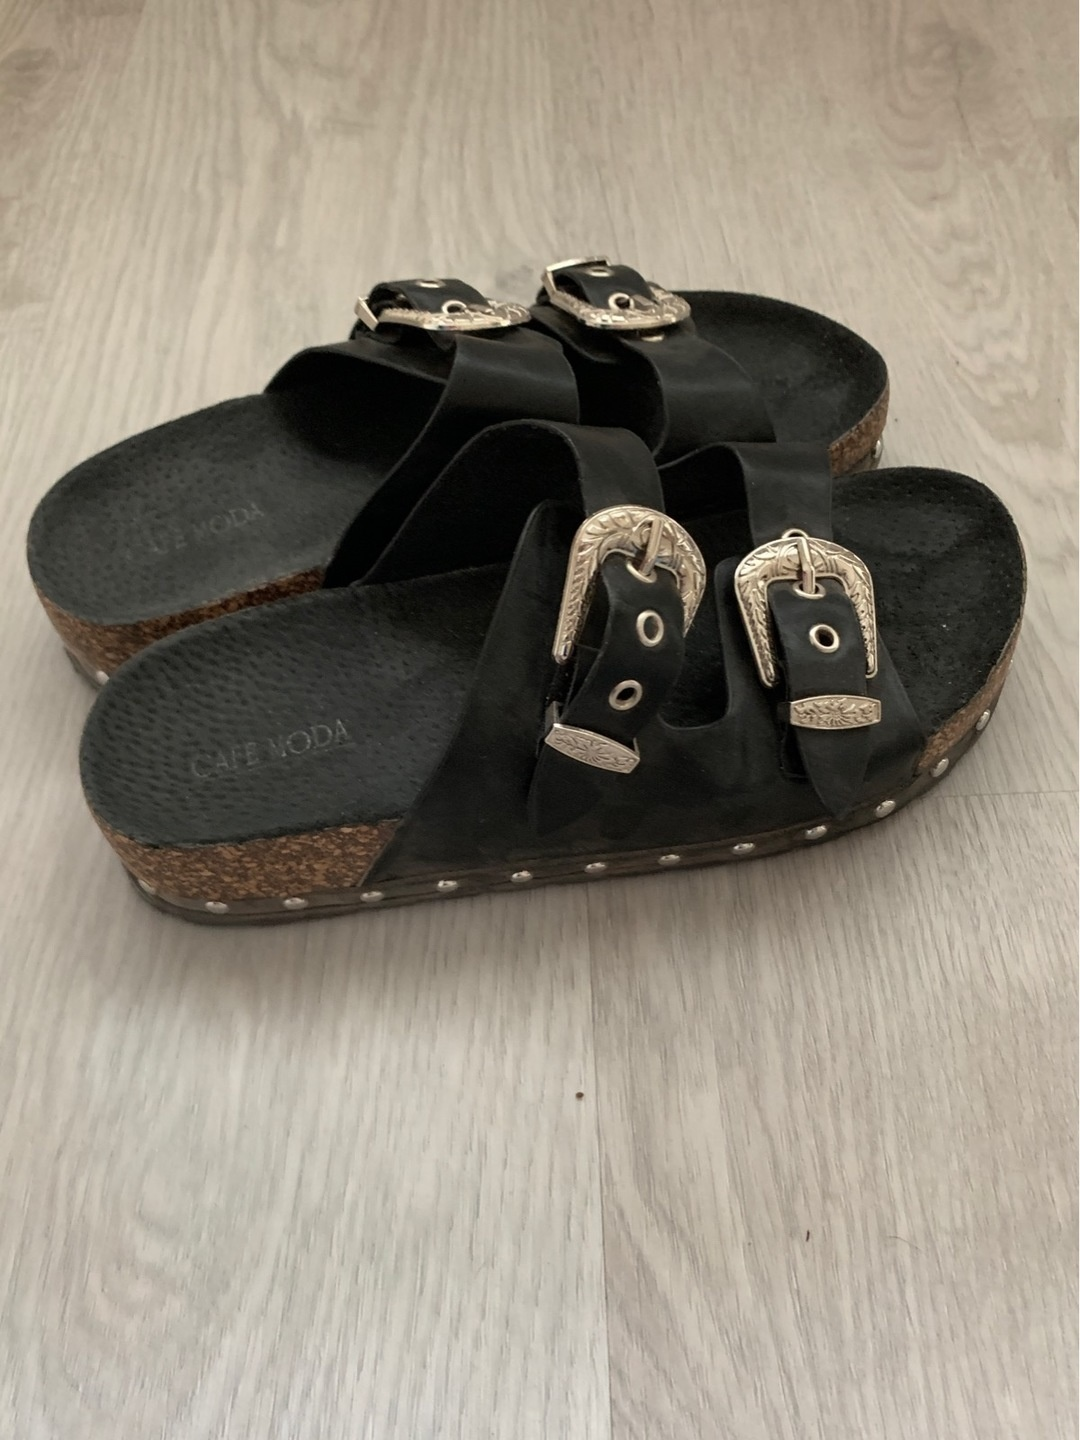 Women's sandals & slippers - CAFE MODA photo 1